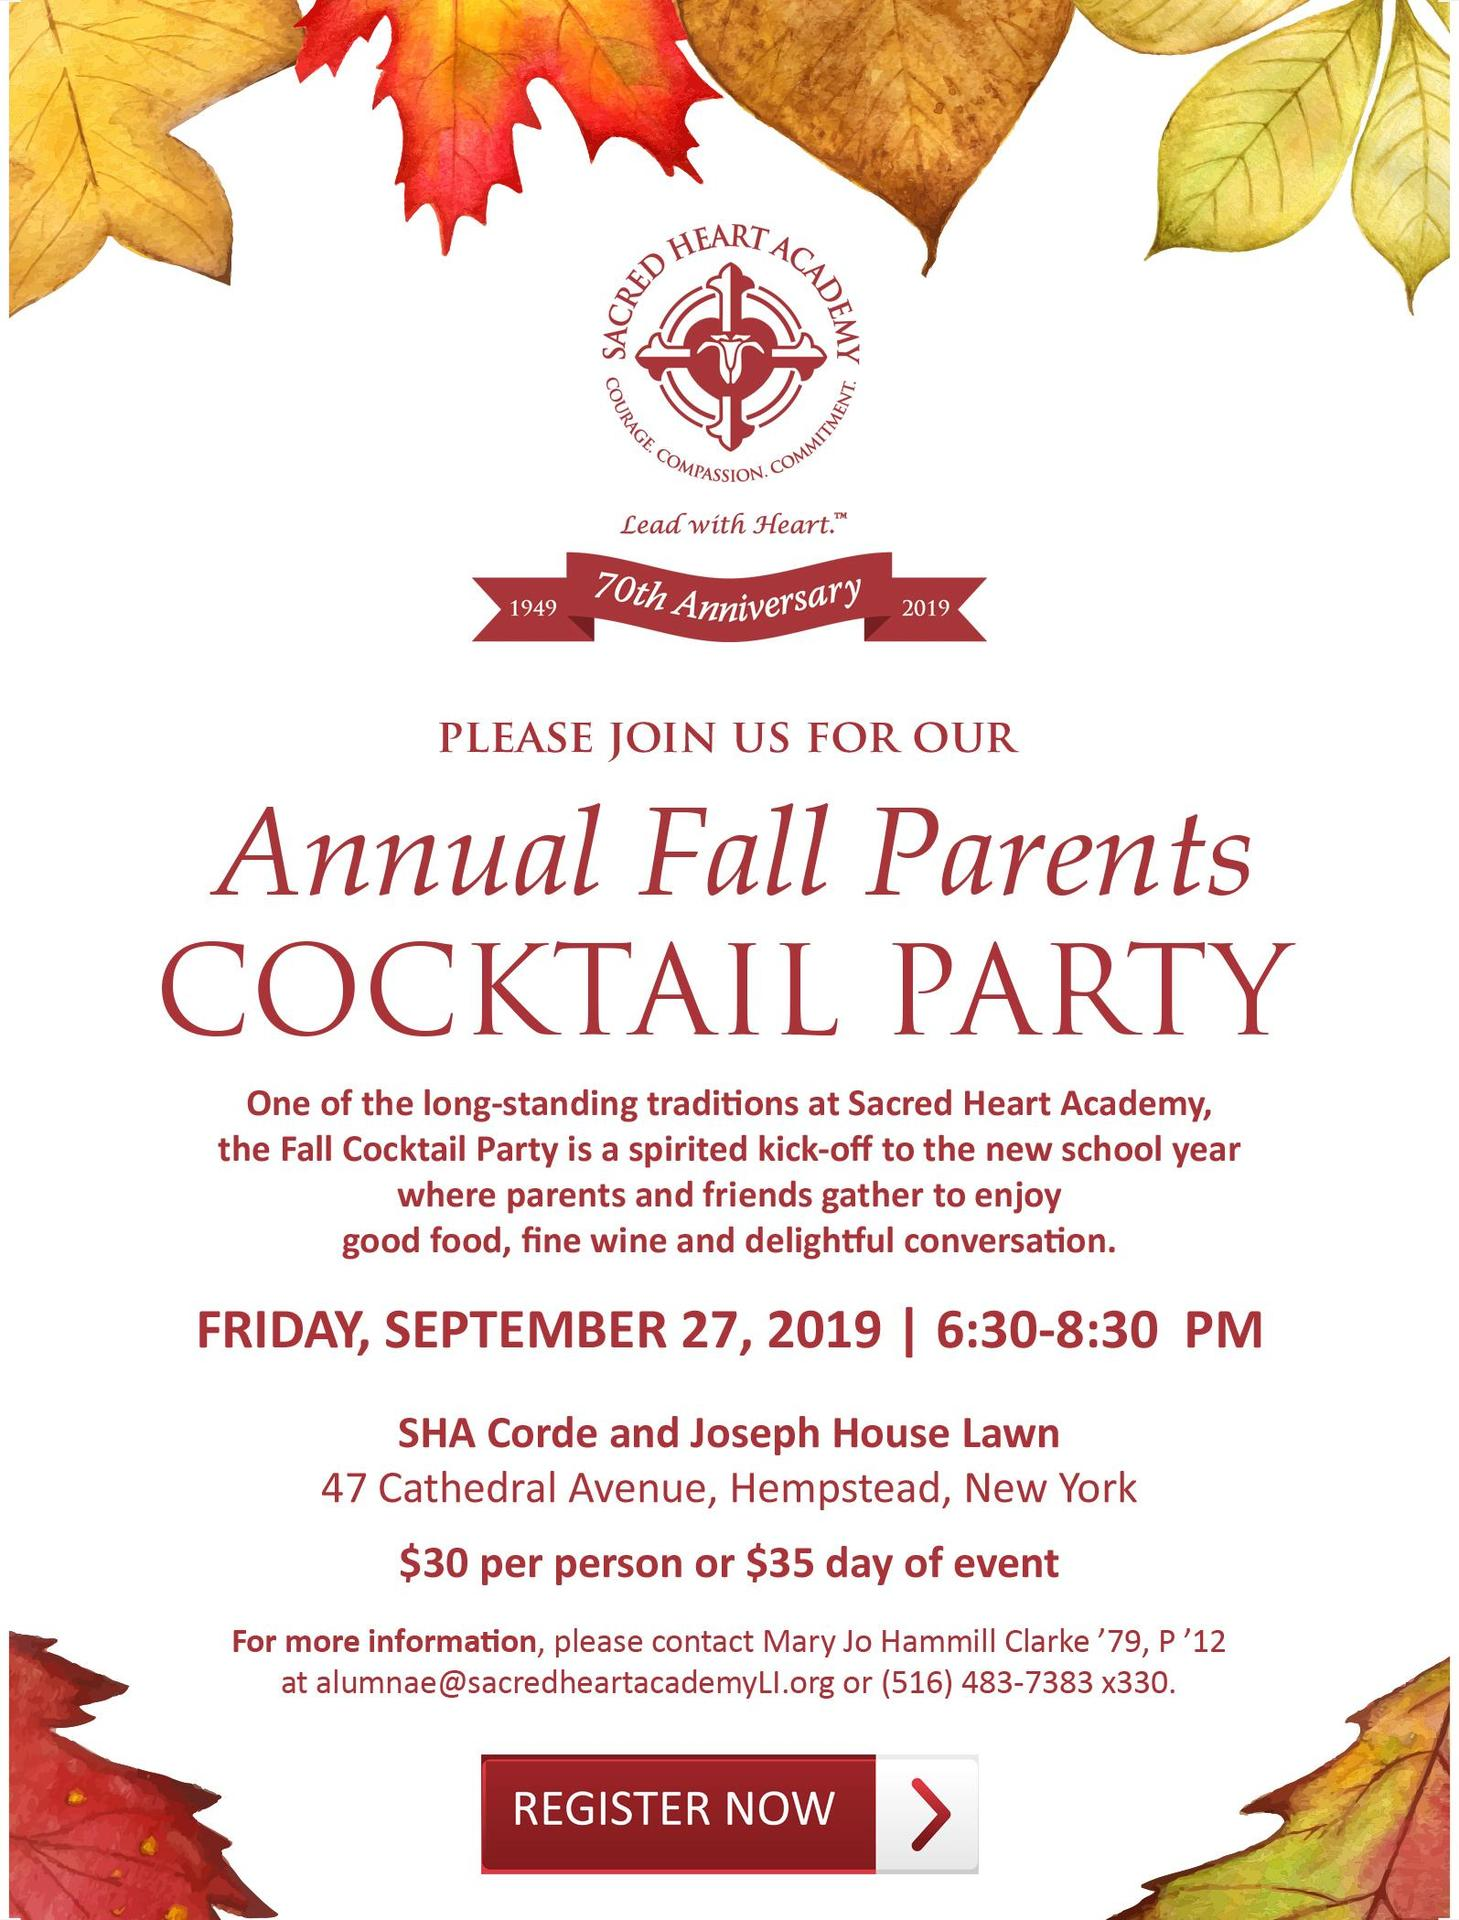 Fall Cocktail Party Invitation